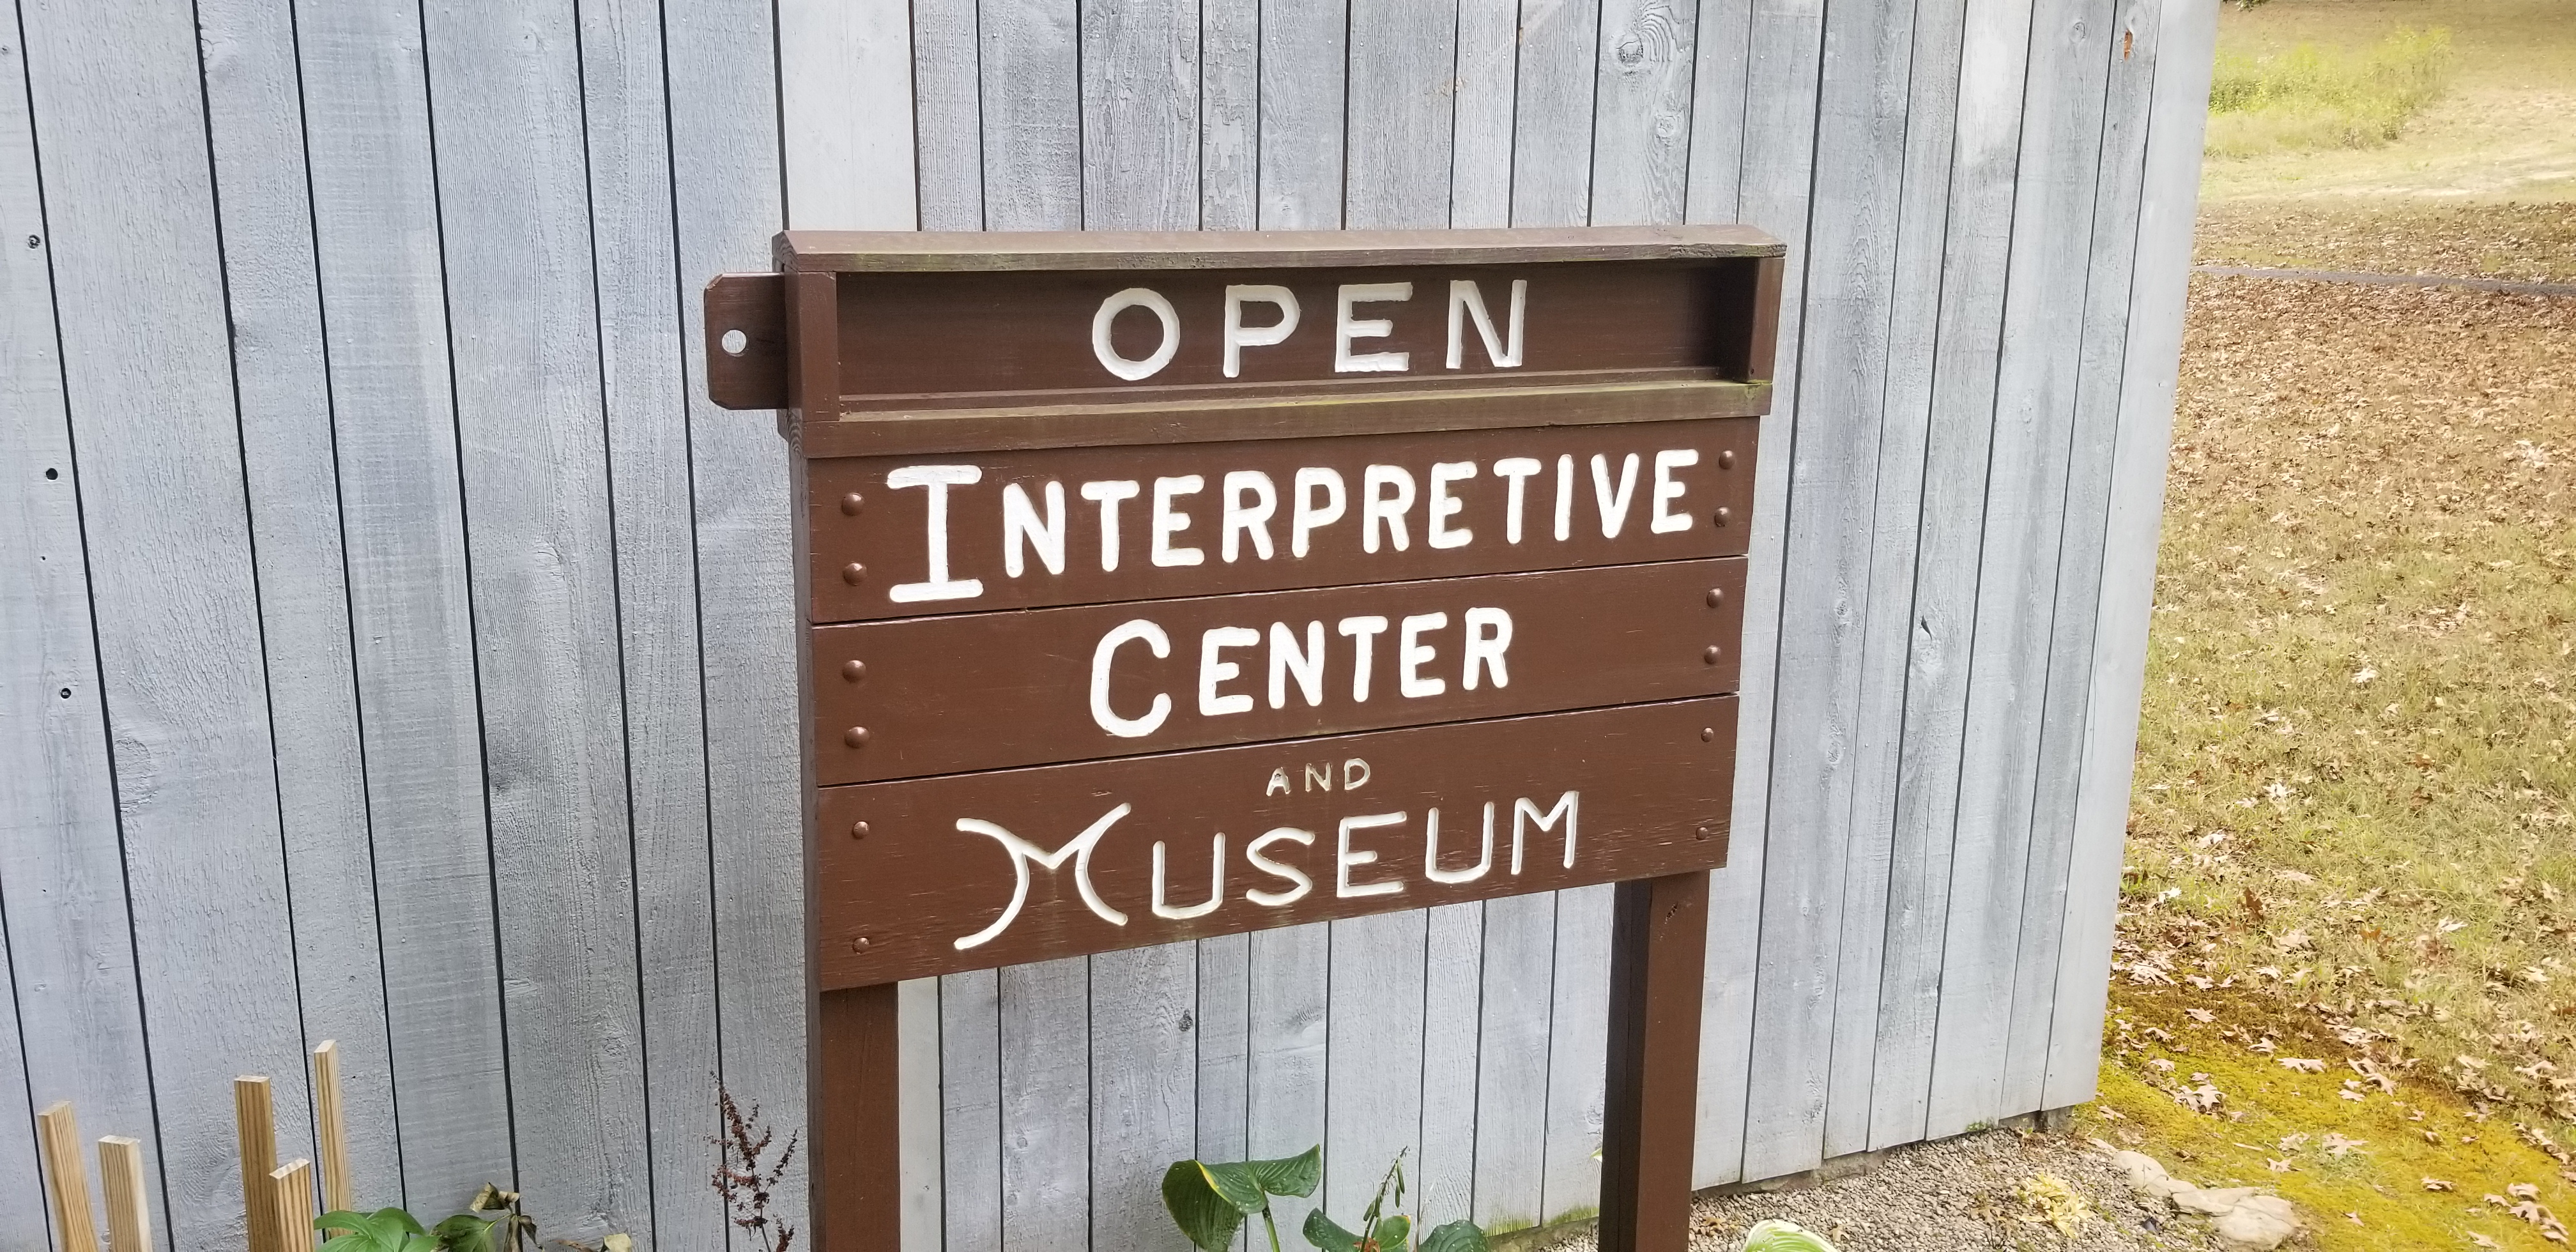 Sign in front of The Bulltown Interpretive Center and Museum Building